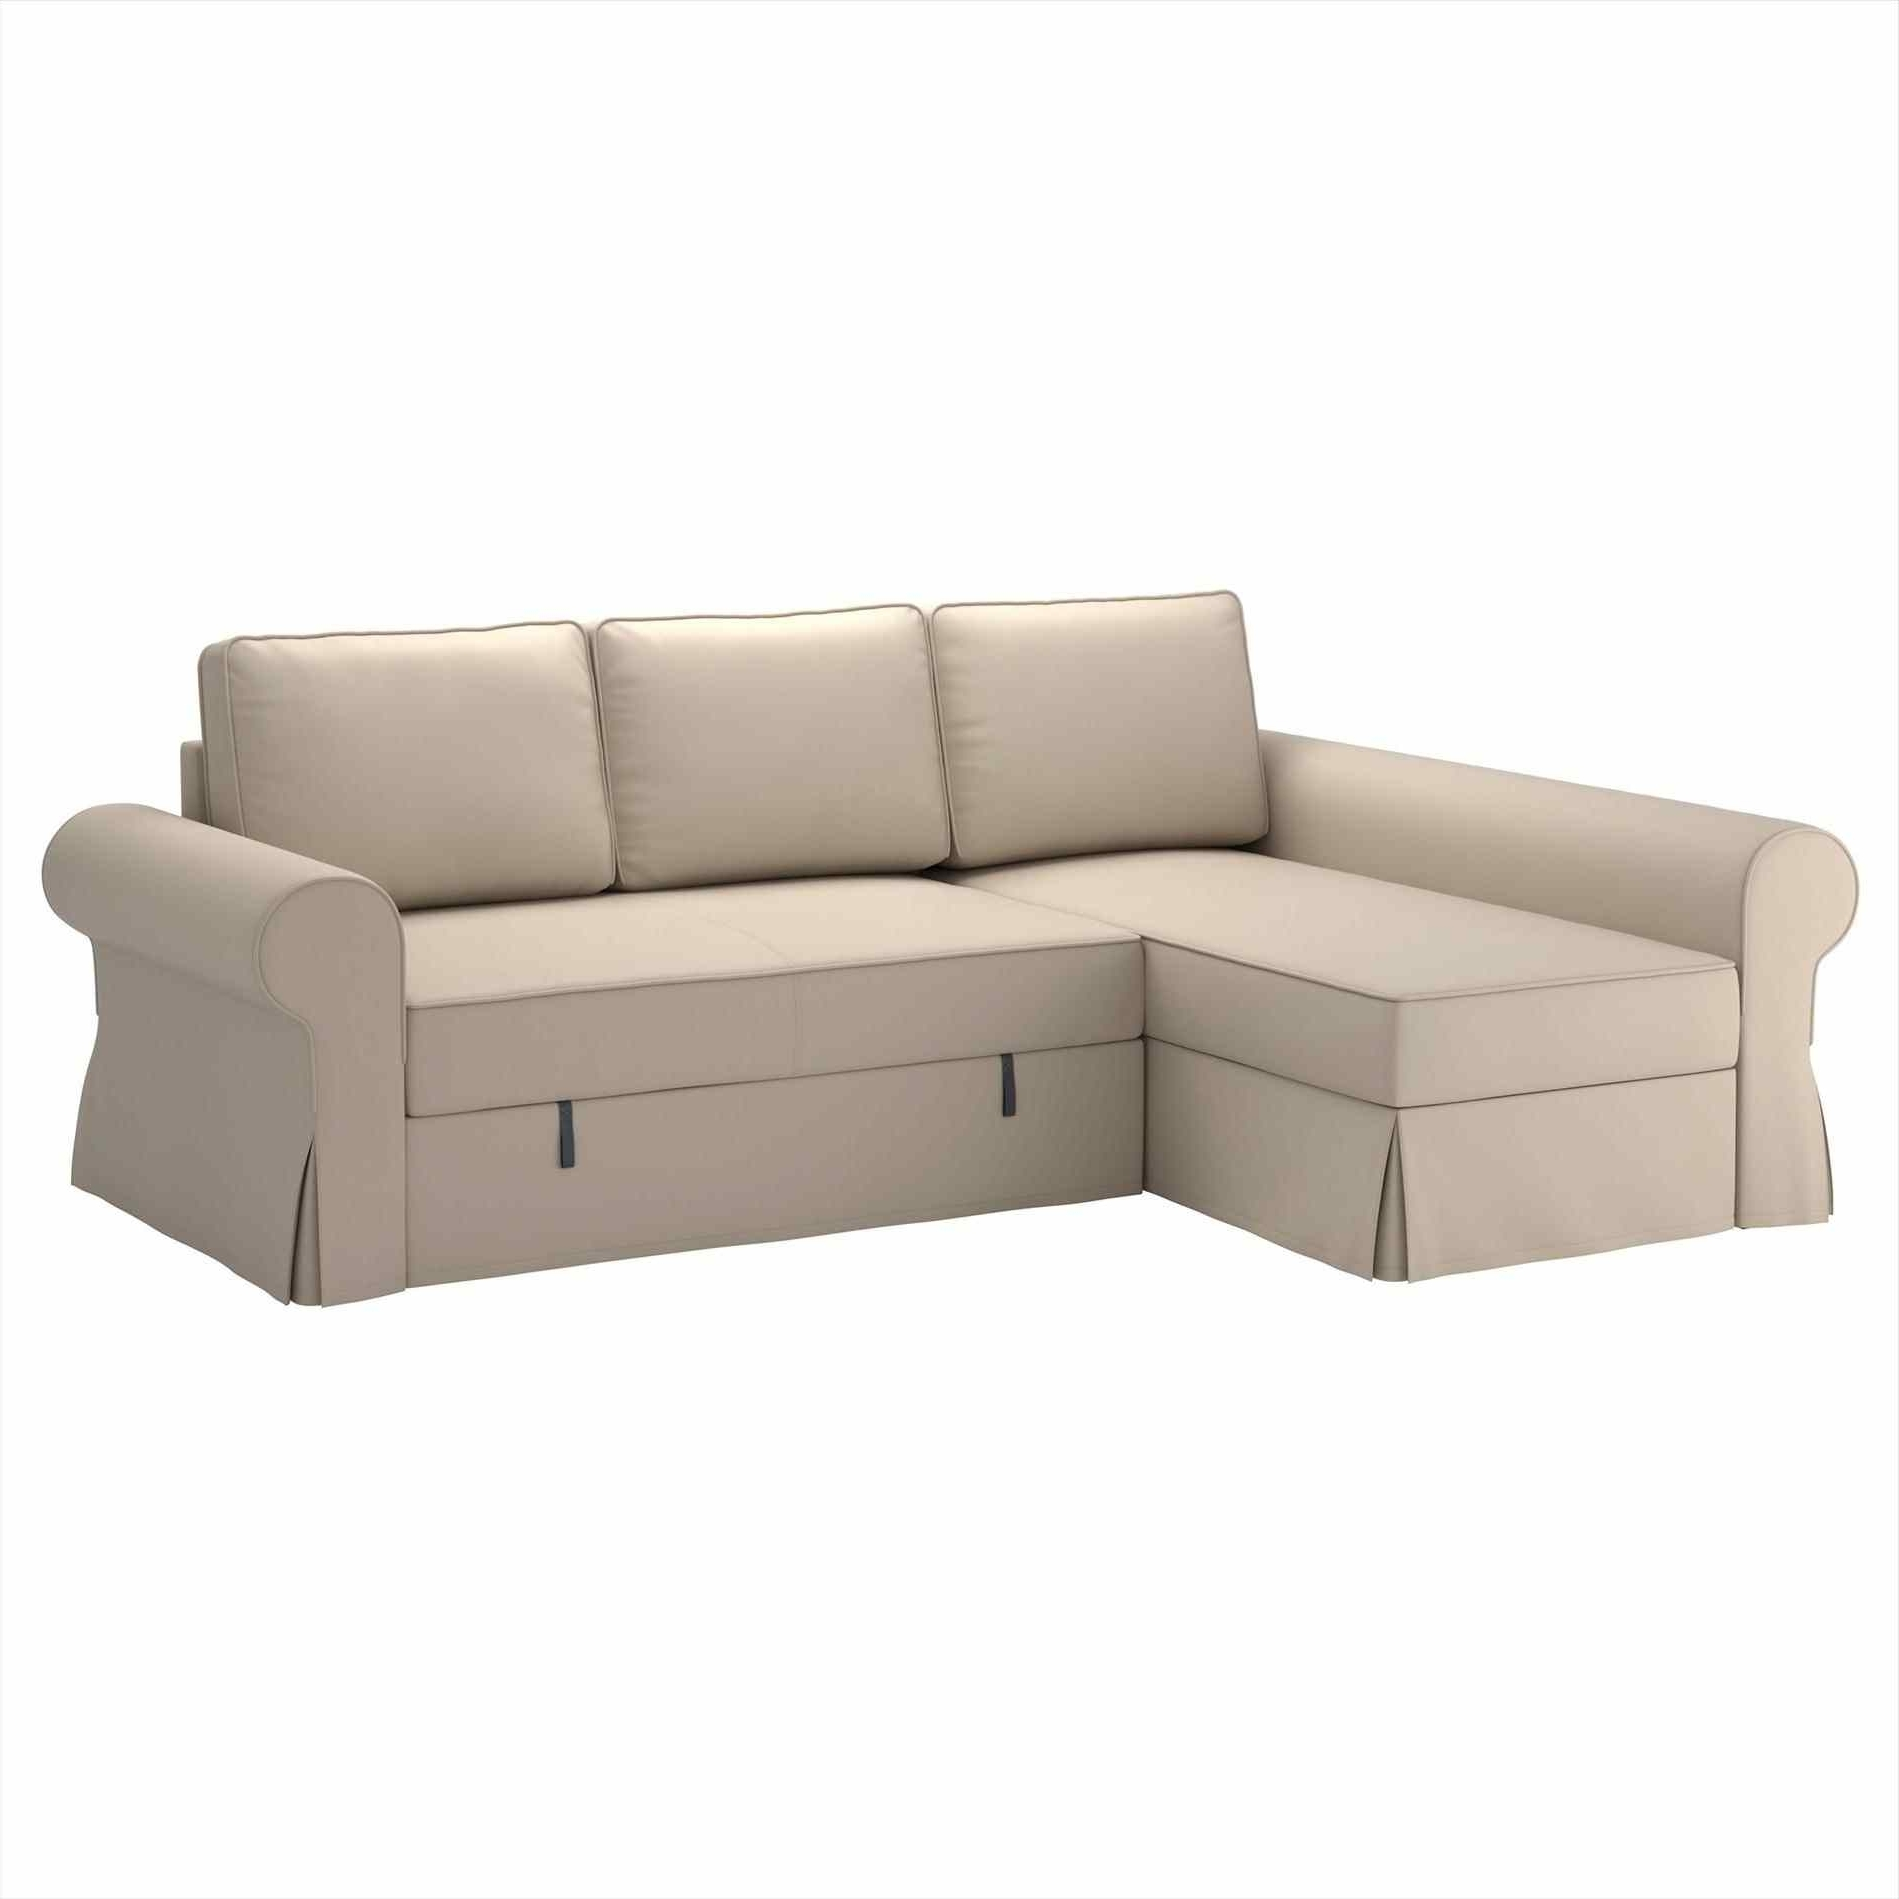 Trendy Sofa : Ikea Seat With Ramna Light Grey Friheten Storage Skiftebo In Ikea Corner Sofas With Storage (View 20 of 20)